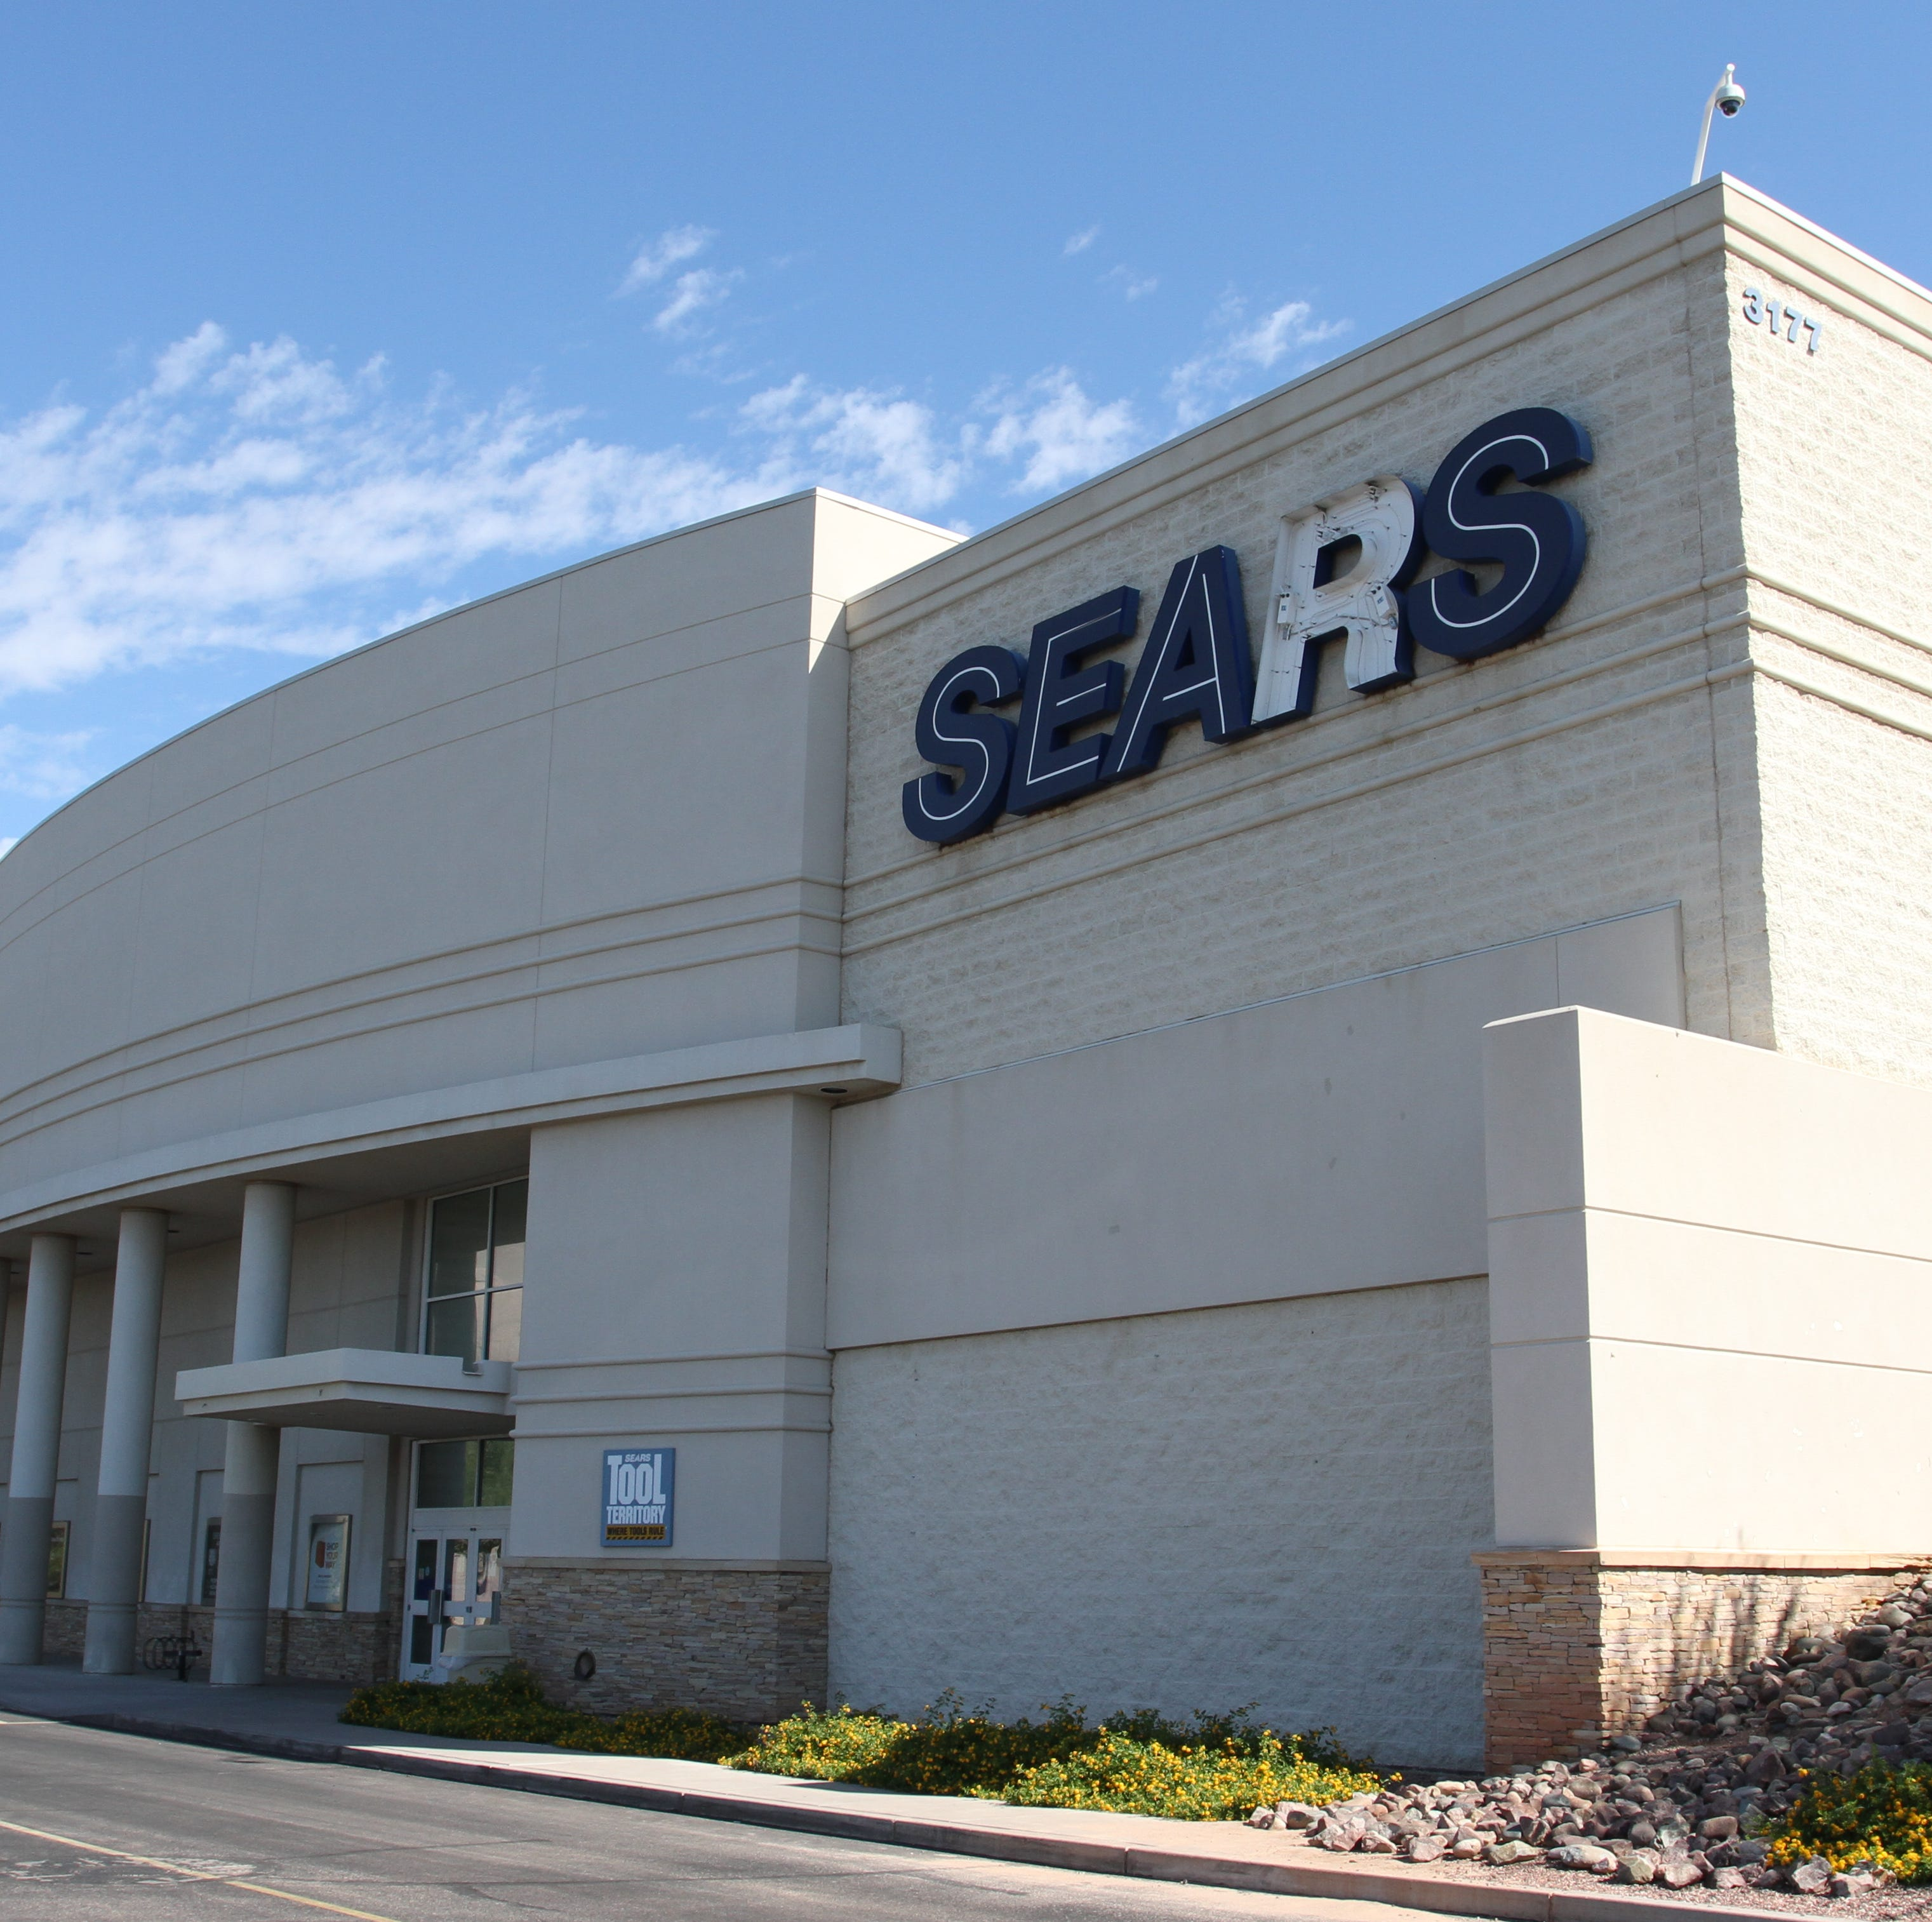 5 Sears locations closing in Arizona, 3 in the Phoenix area